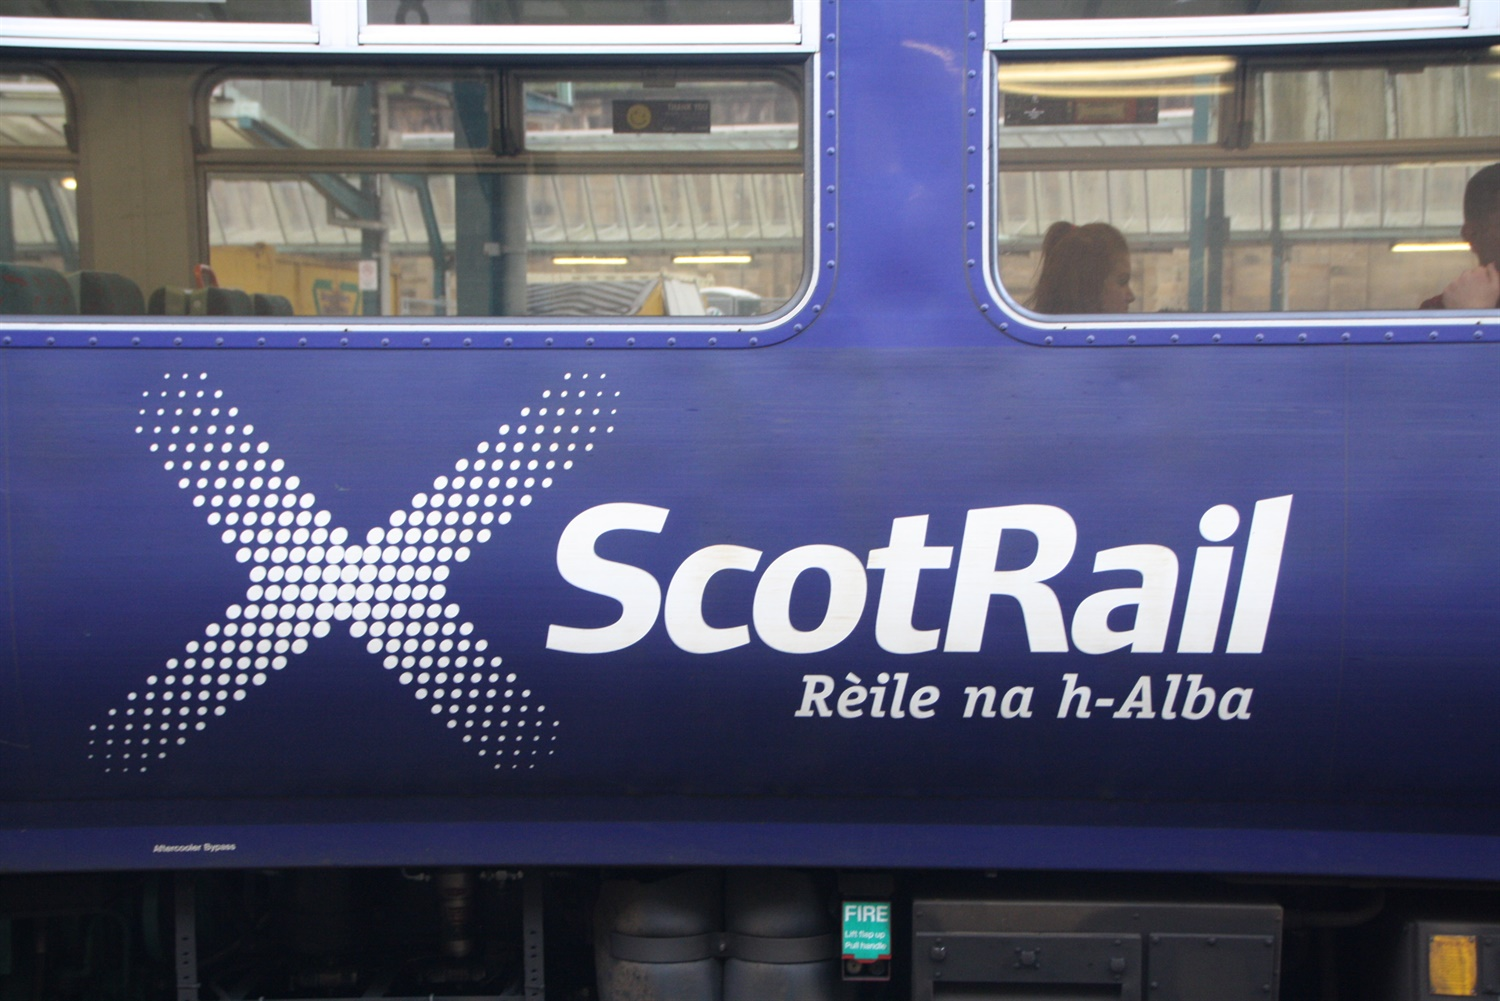 Public sector body 'ready to take over' ScotRail if issues persist